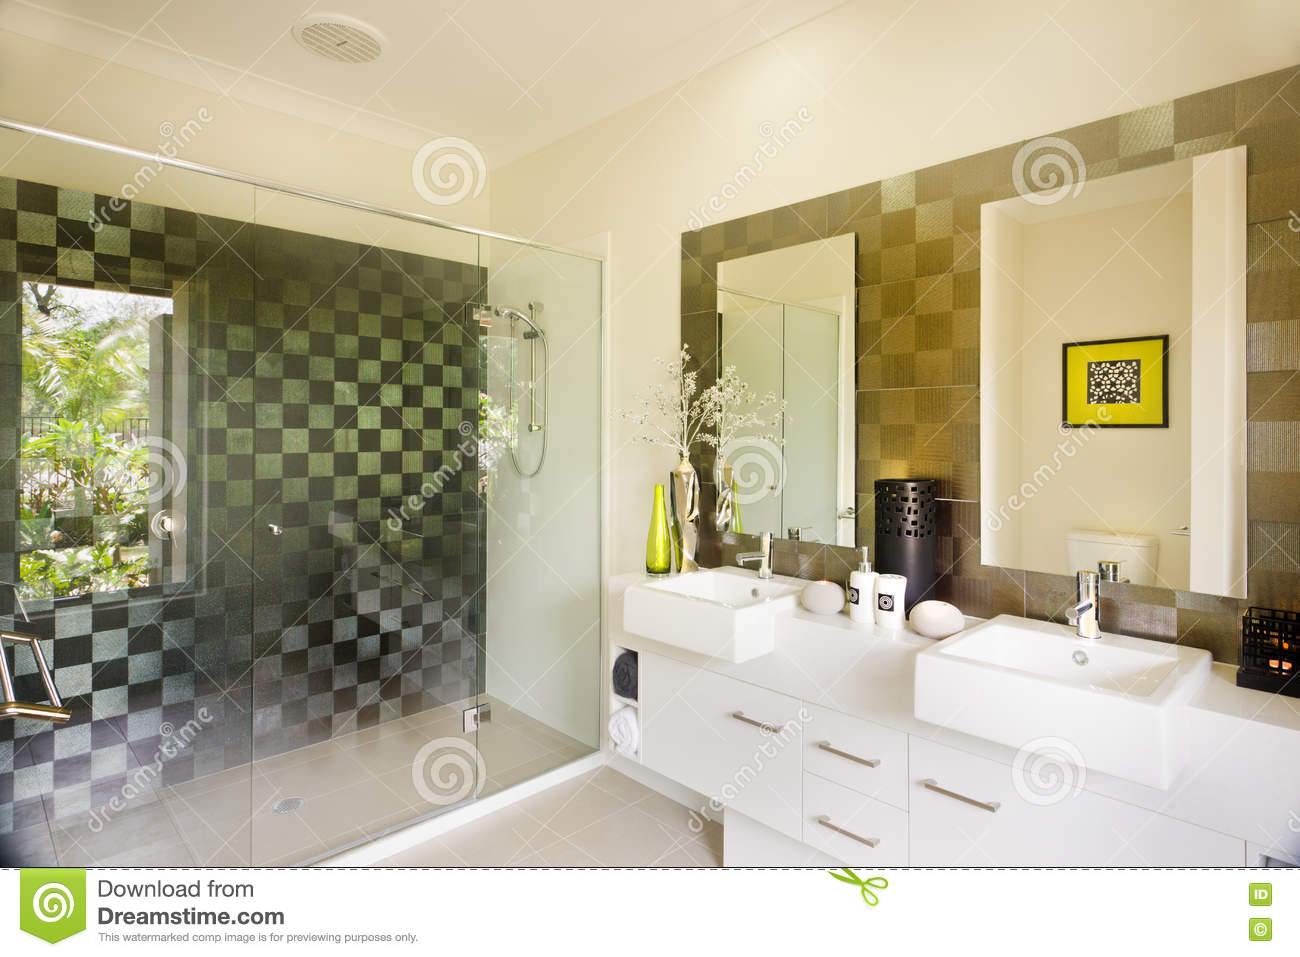 Stylish modern washroom with a glass shower and mirrors